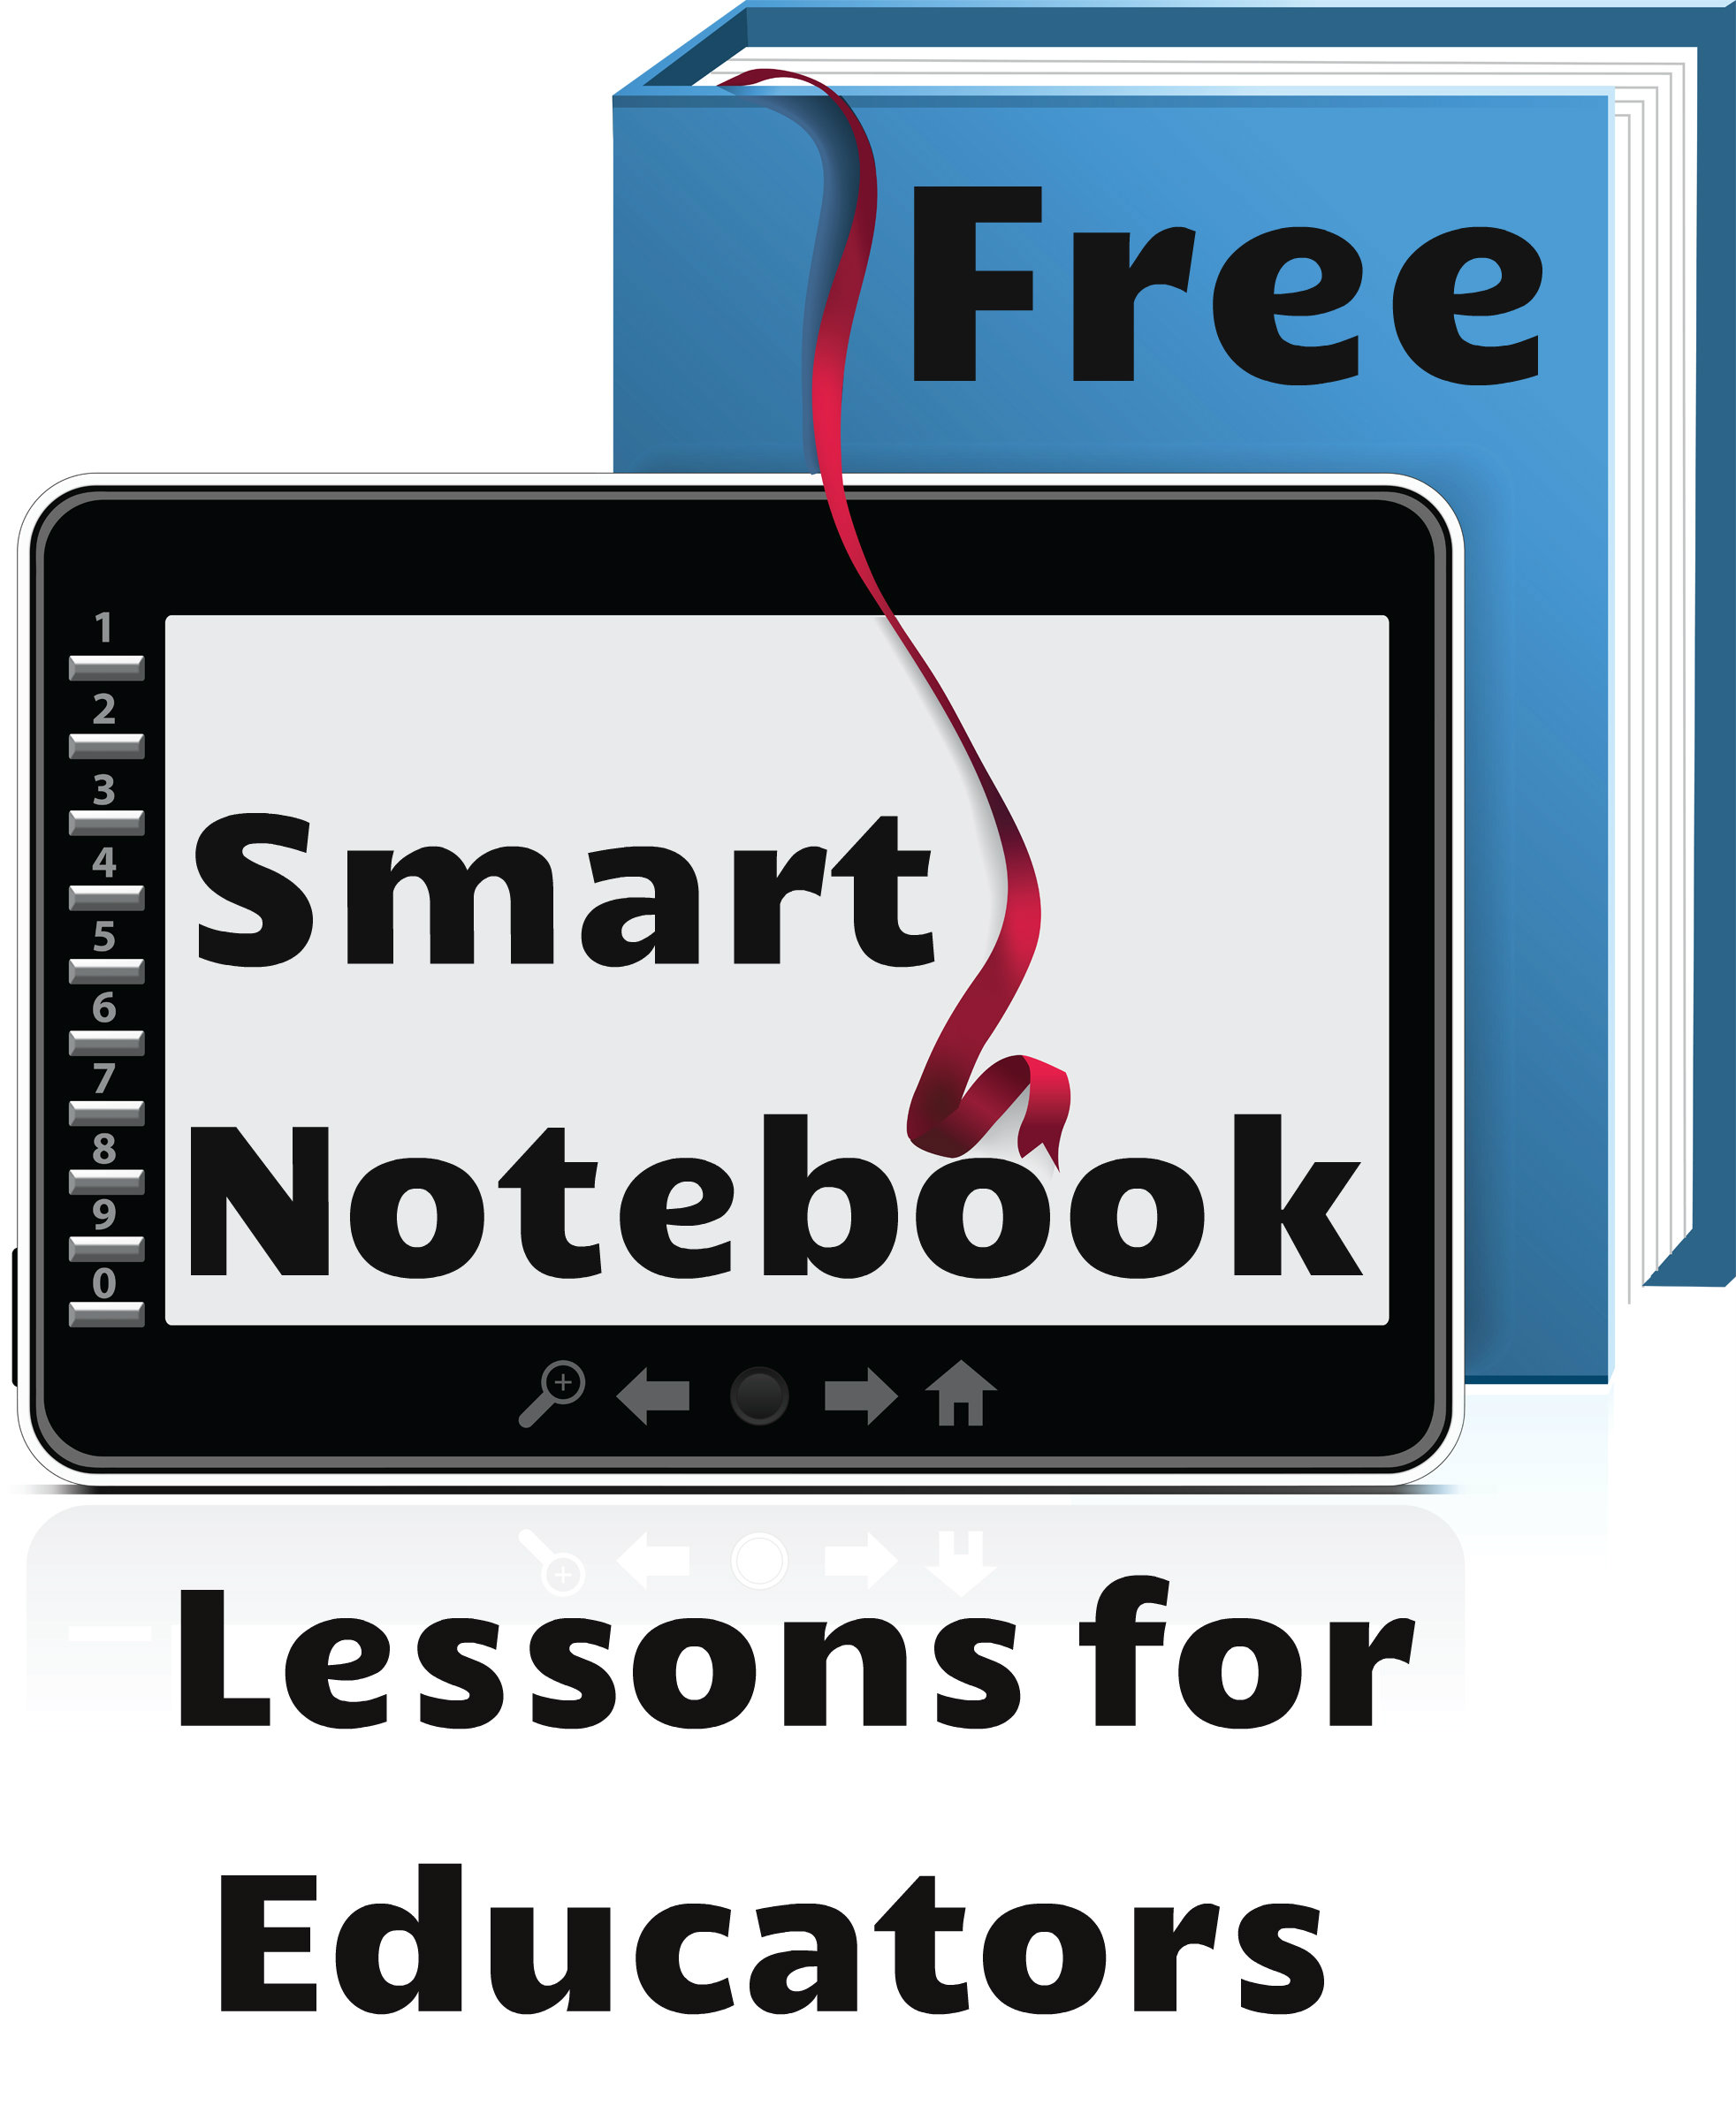 Smart Notebook Free Resource for Educators